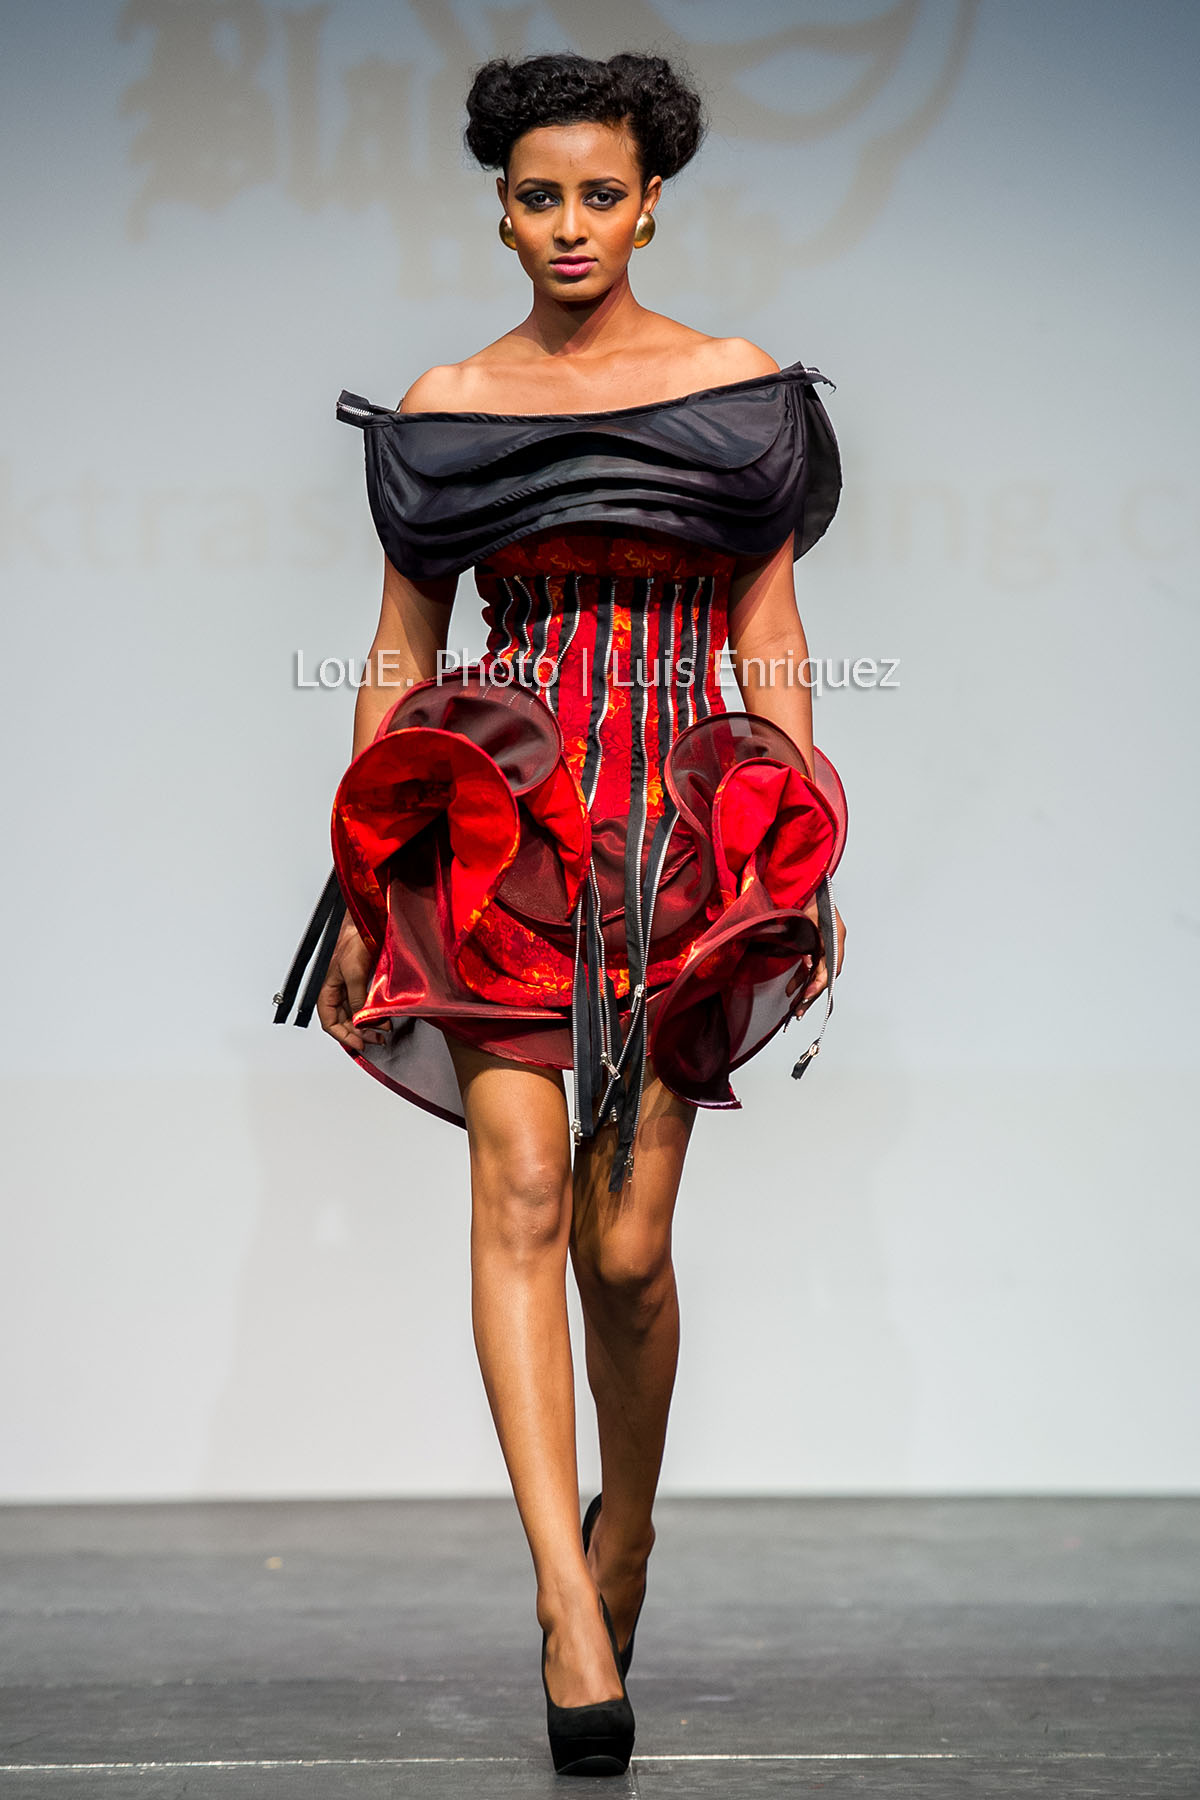 African Fashion Week Toronto Loue Photo Blog